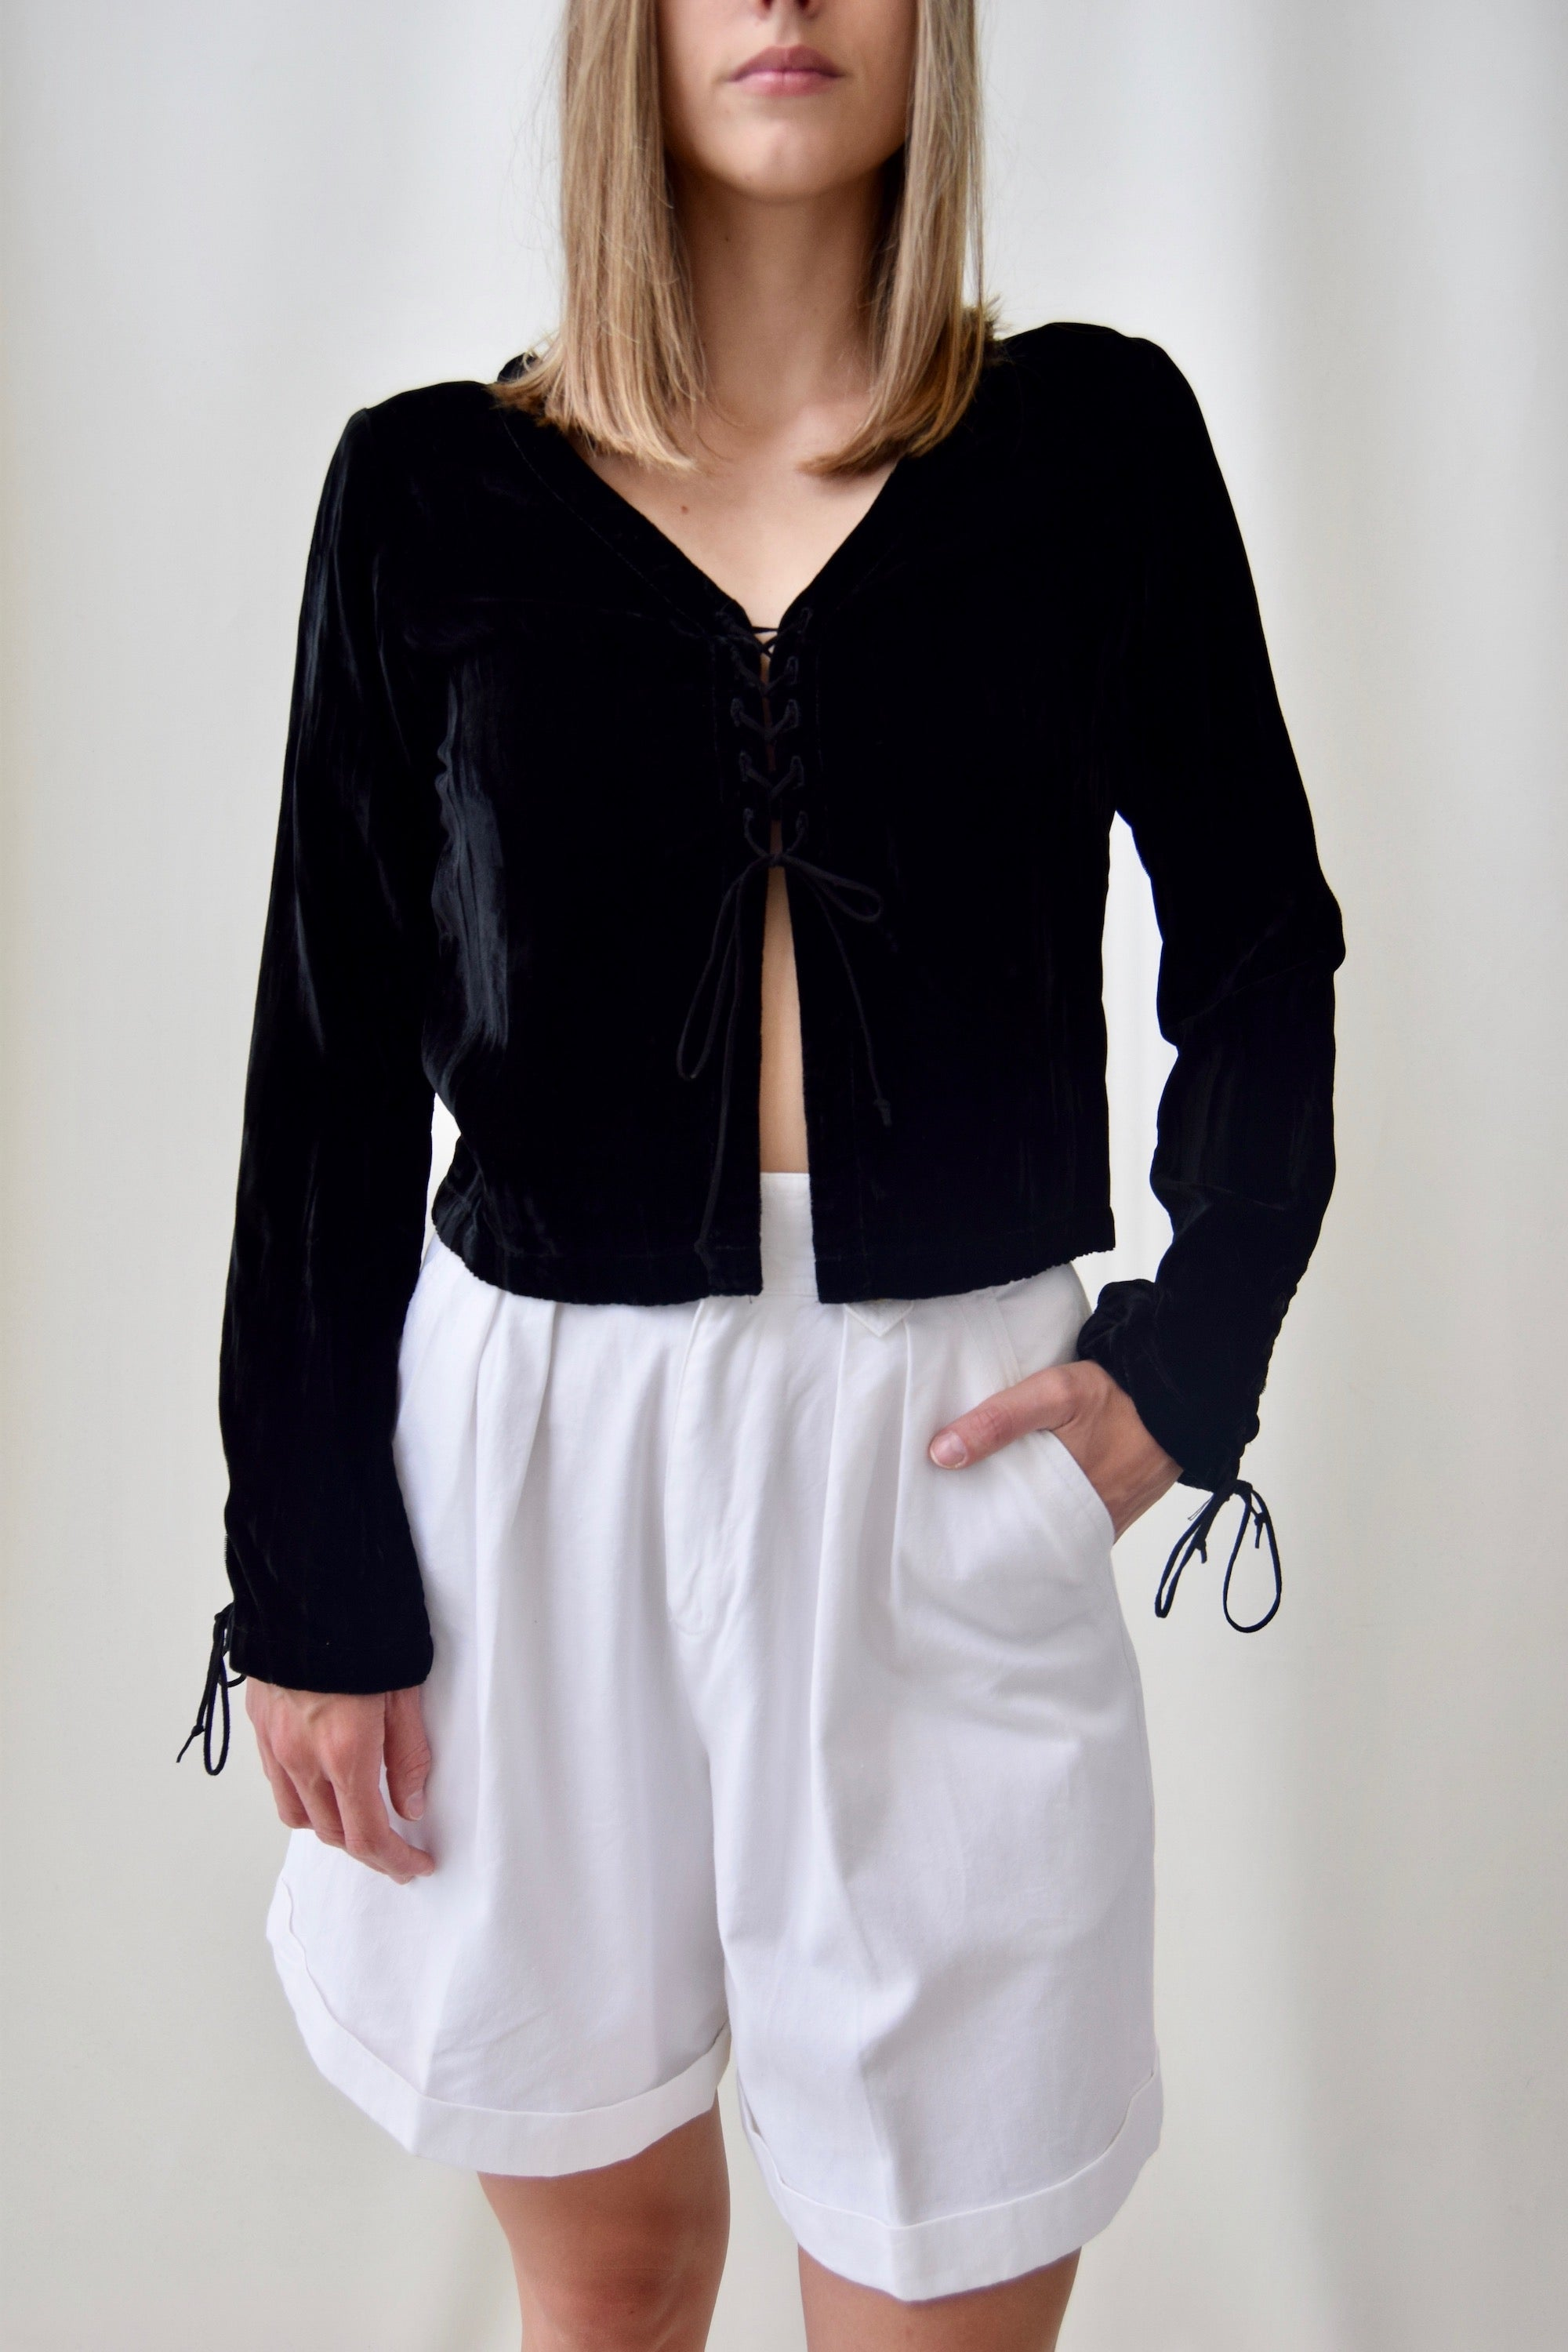 90's Black Velvet Renaissance Revival Top